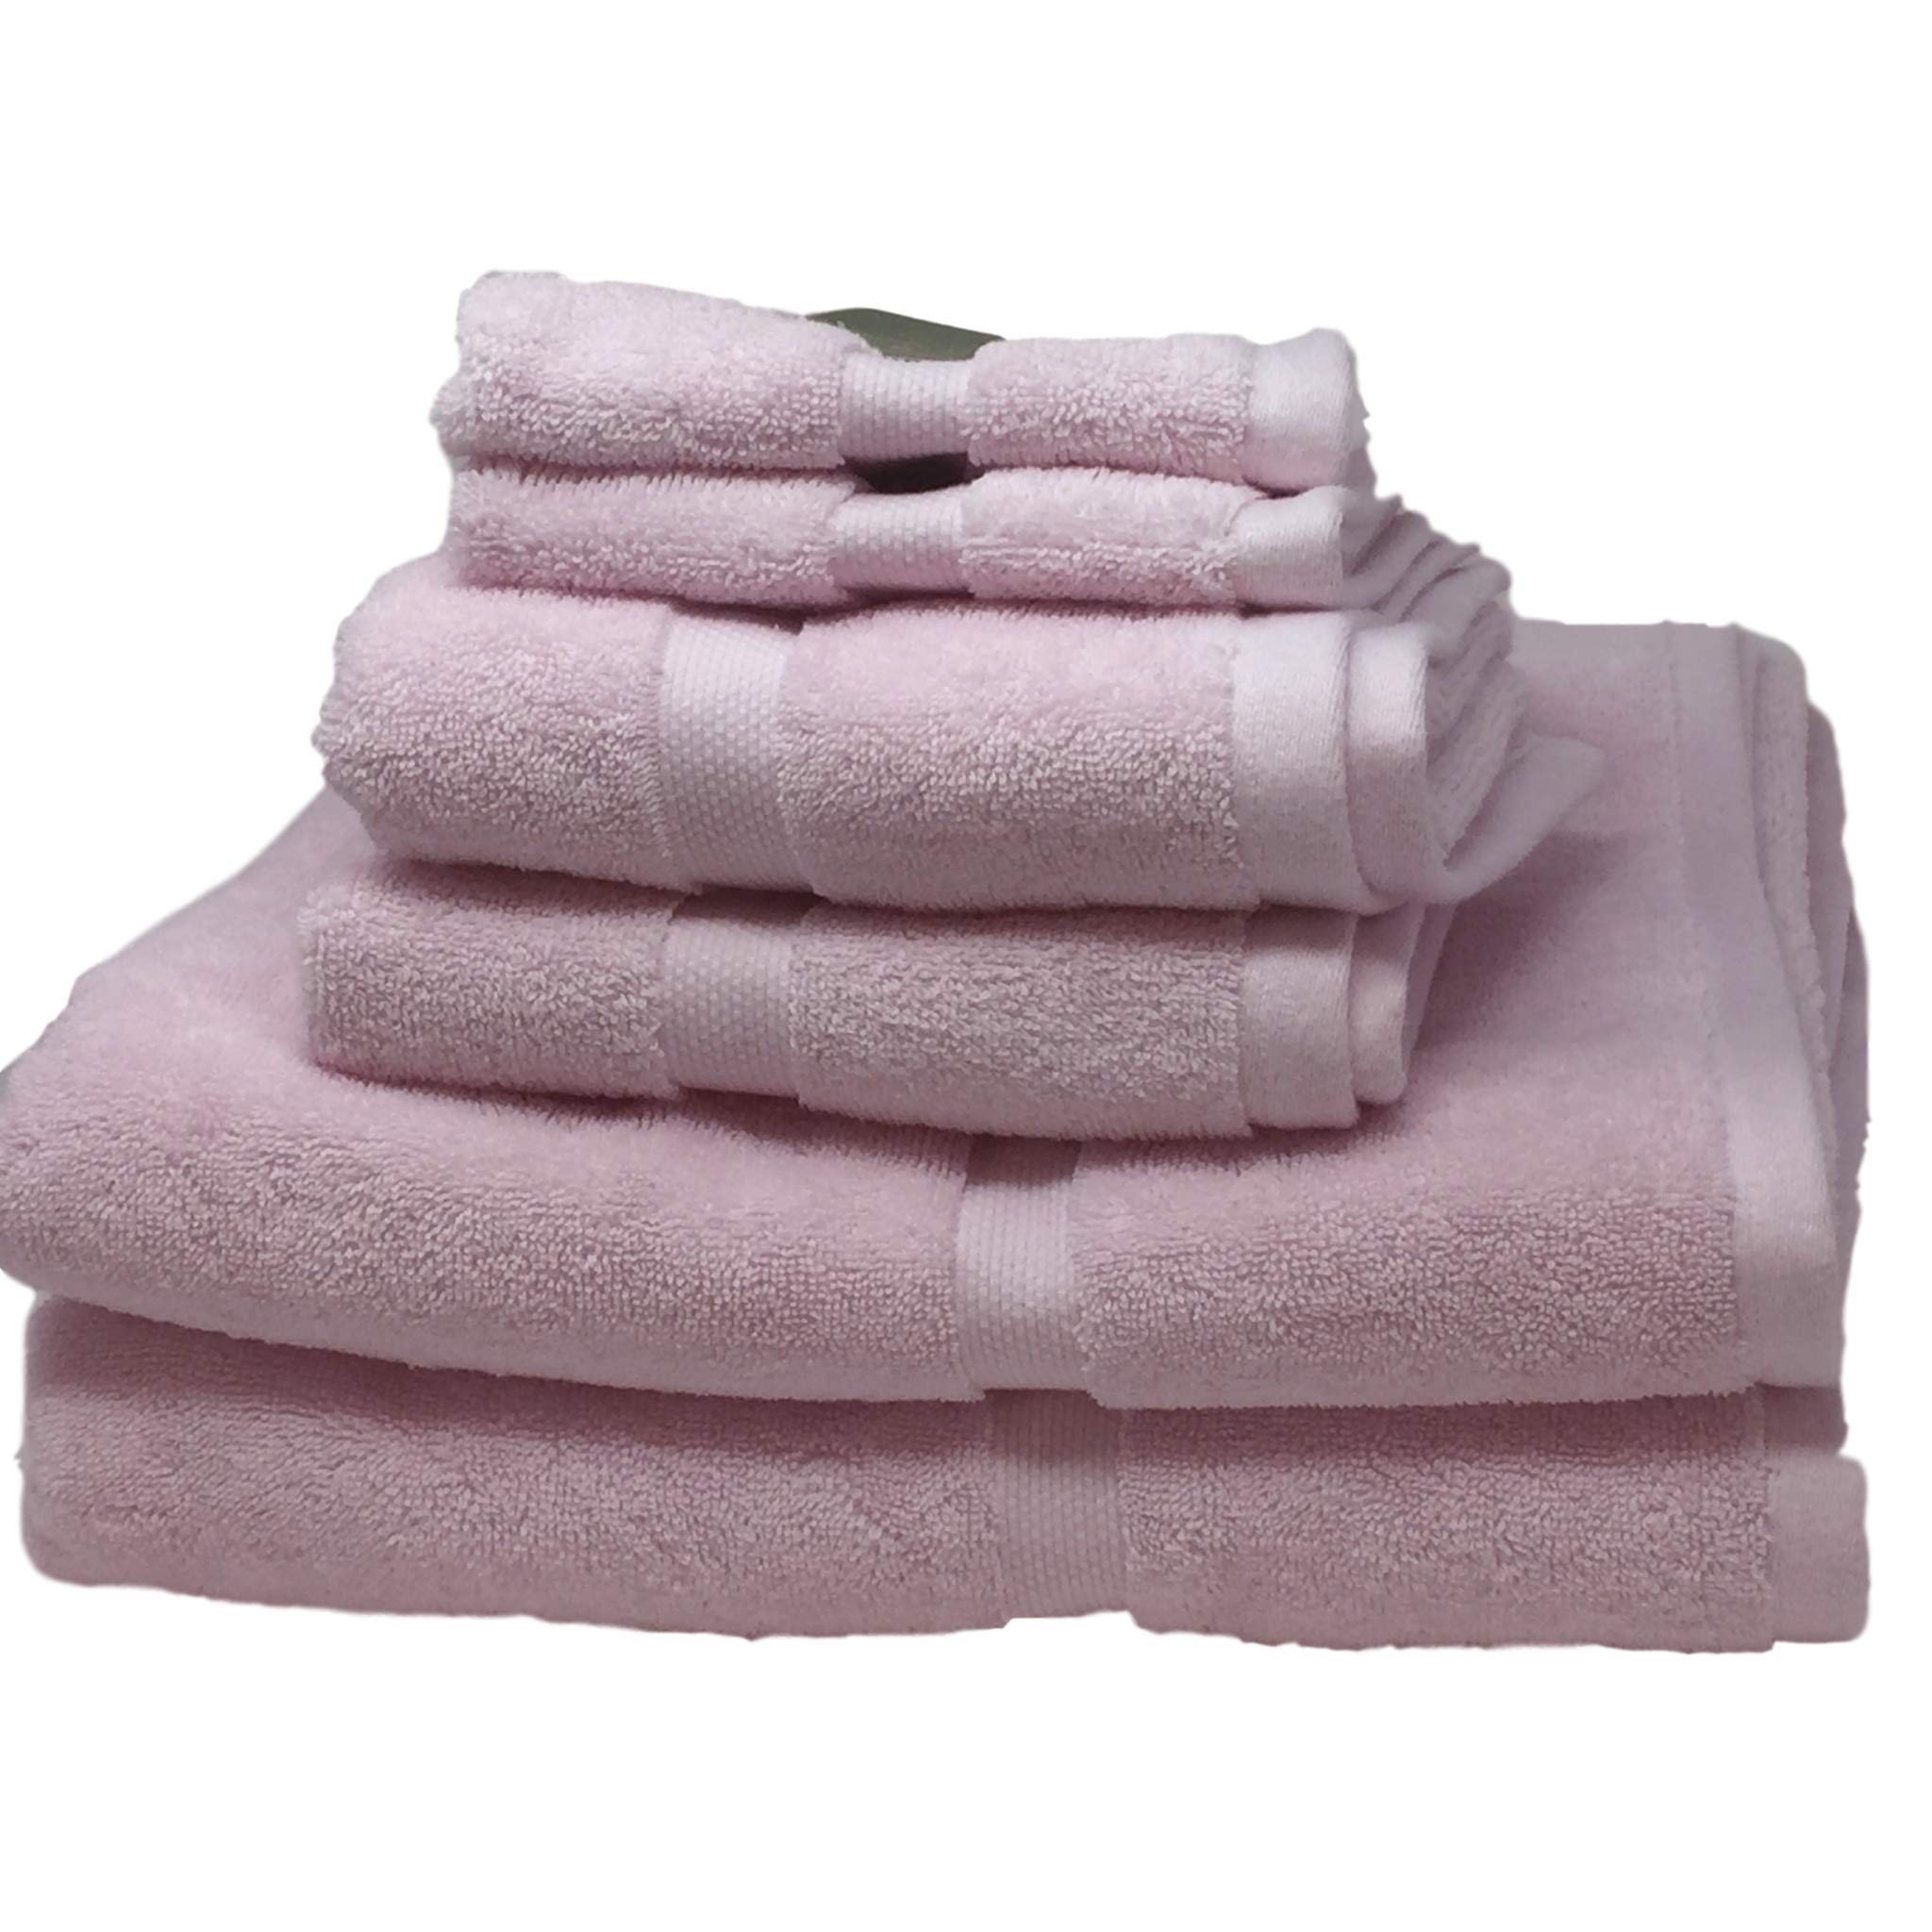 Kate Spade Light Pink Towel 6 Piece Set Bundle - 2 Bath Towels, 2 Hand Towels, 2 Washcloths